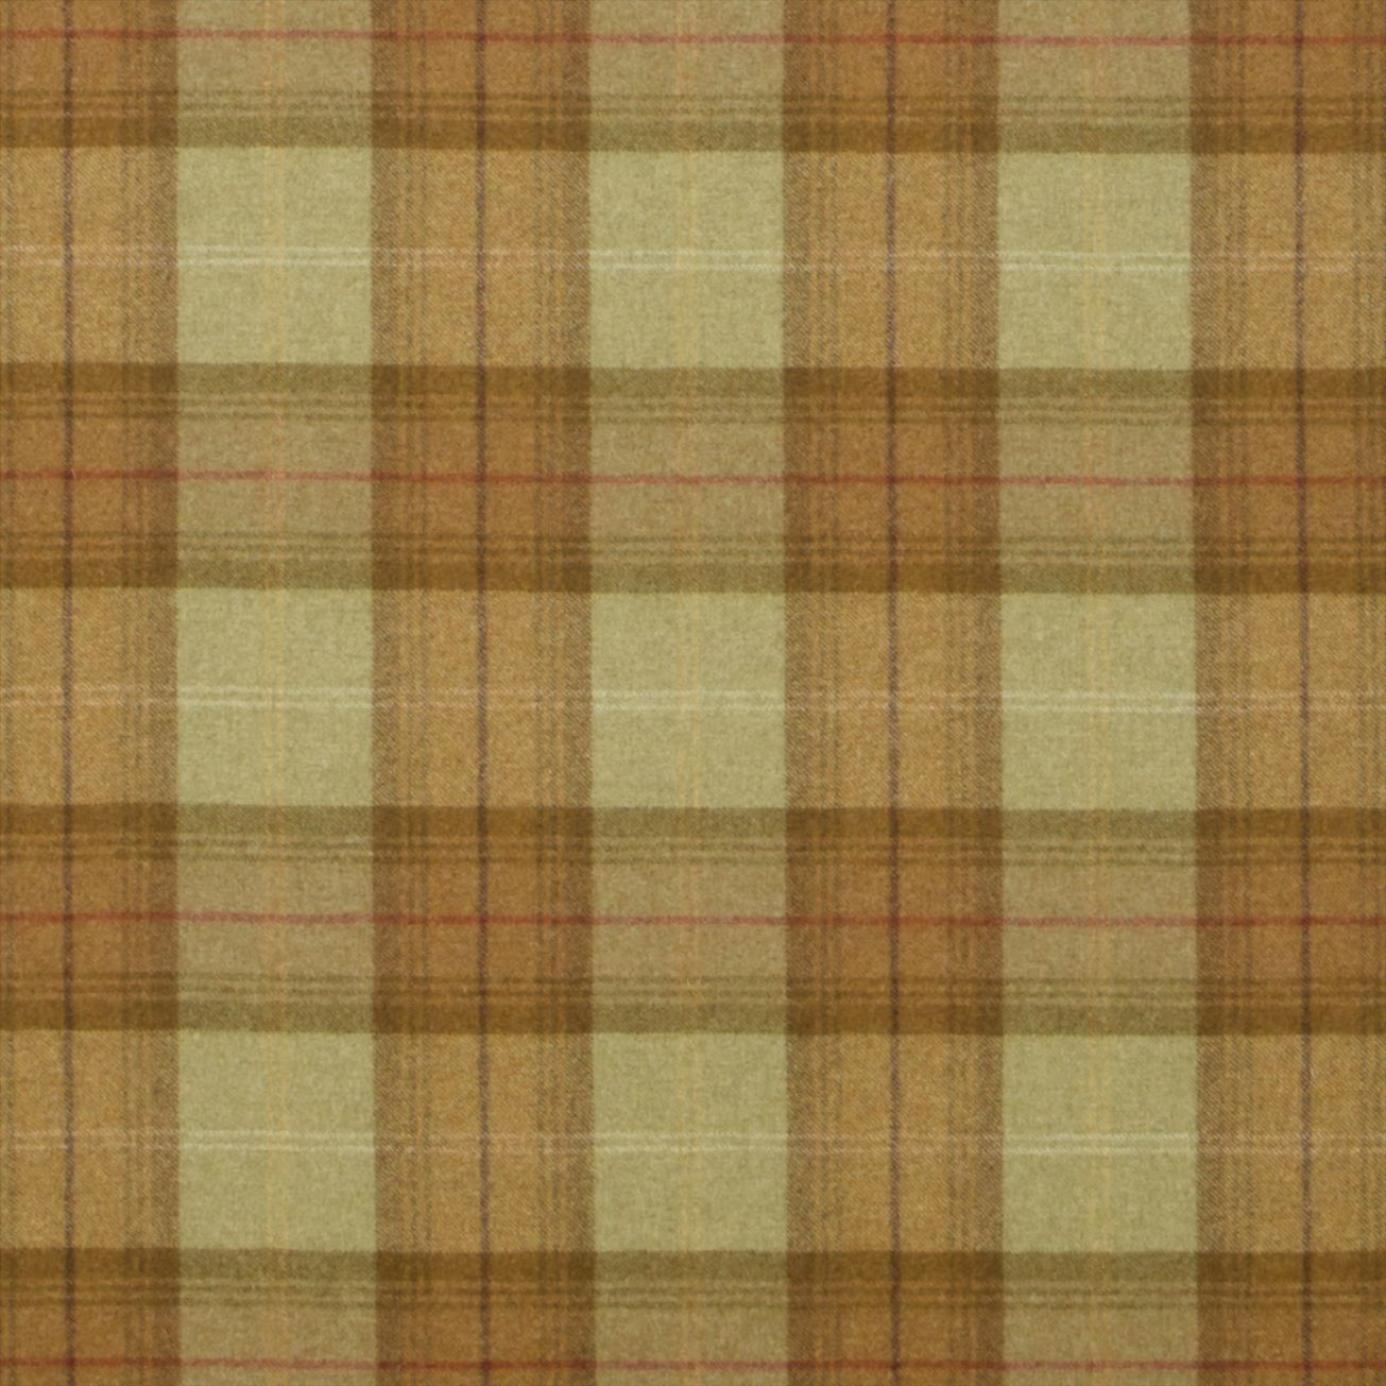 Roman Blinds In Woodford Plaid Fabric Lodenolive Dhigwp302 Throughout Plaid Roman Blinds (Image 11 of 15)